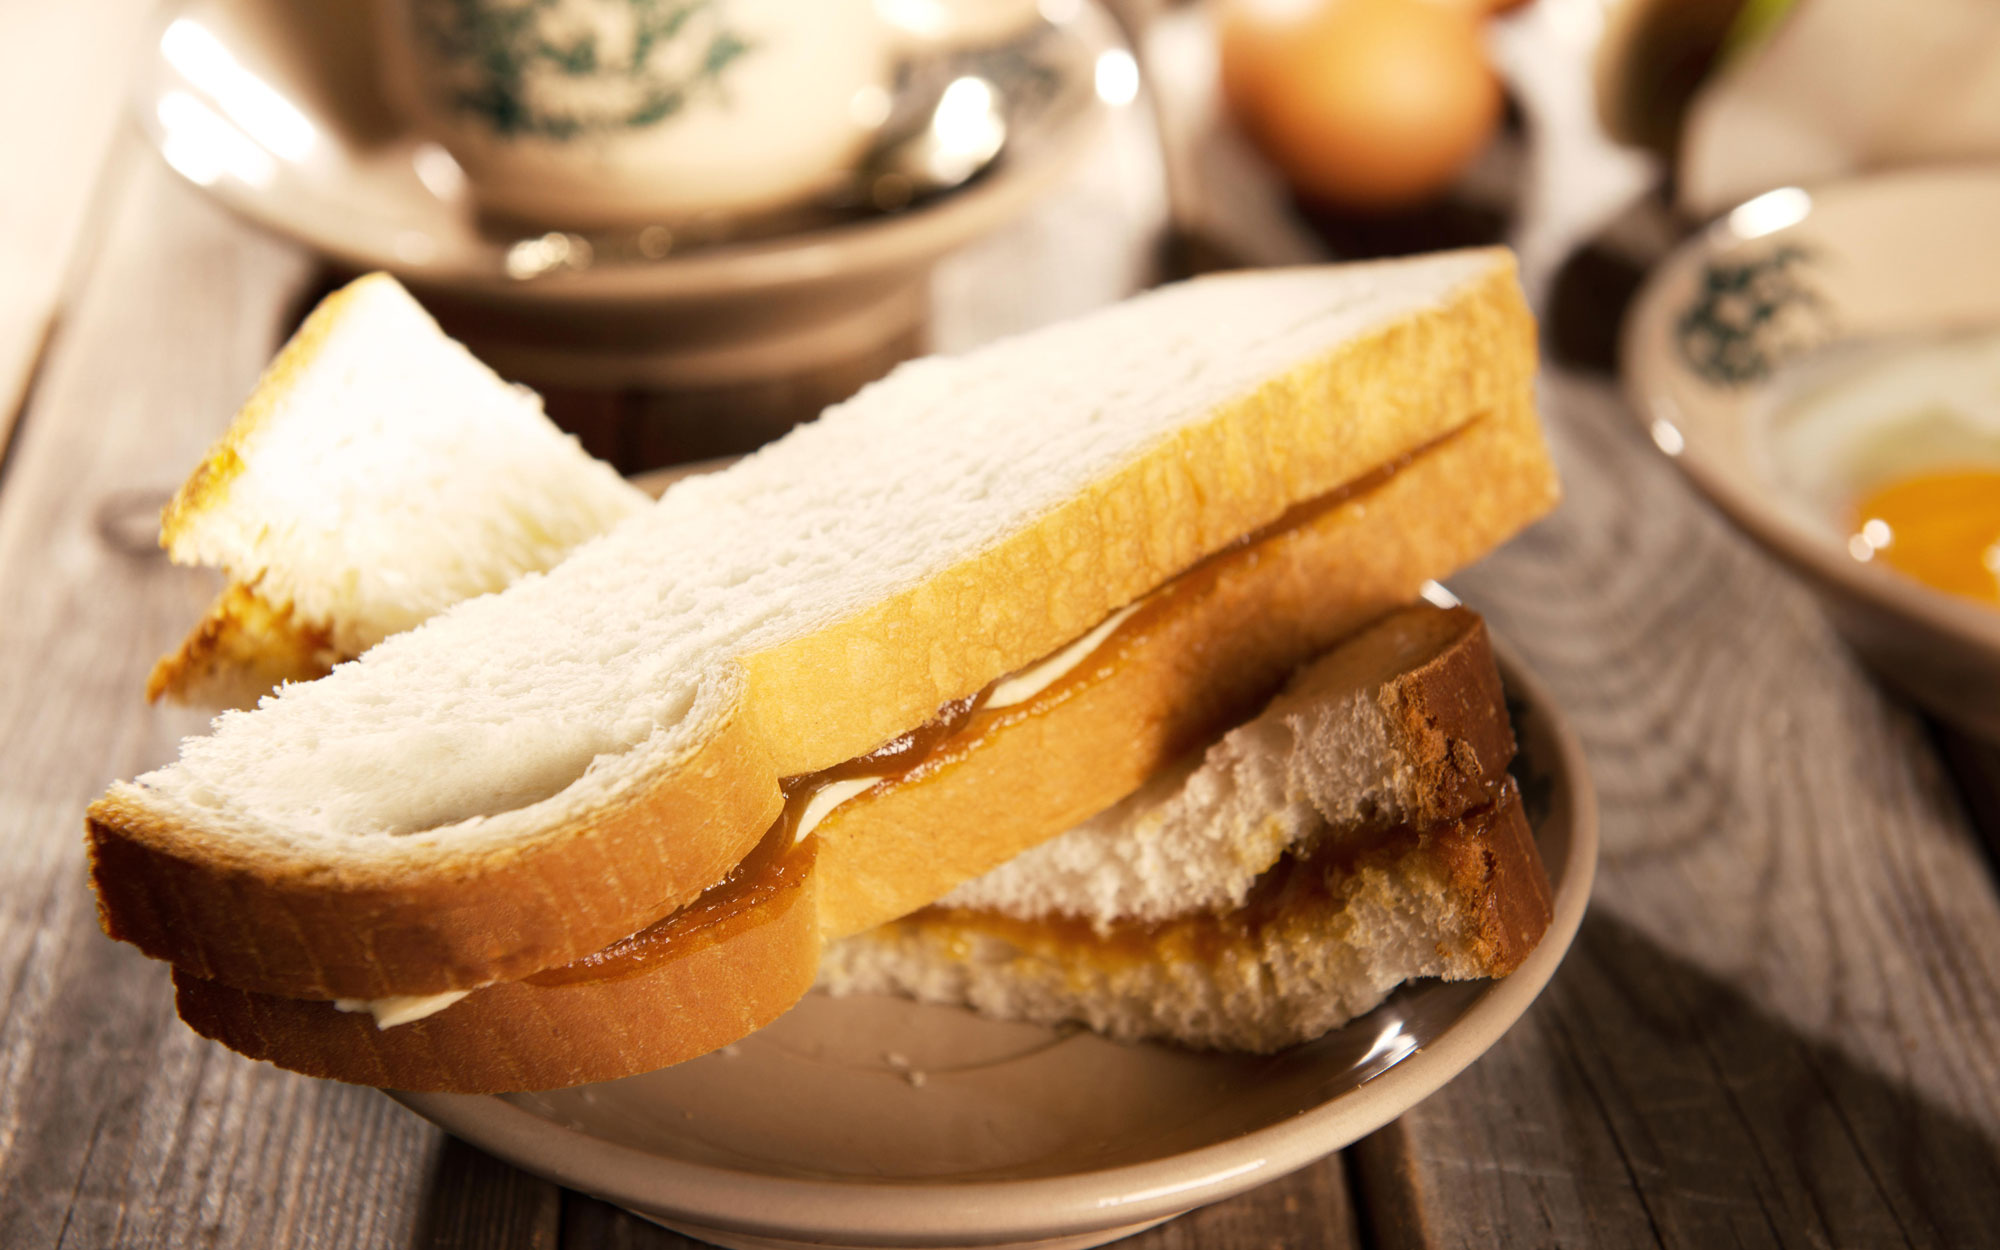 World's Strangest Hangover Cures: Kaya Toast